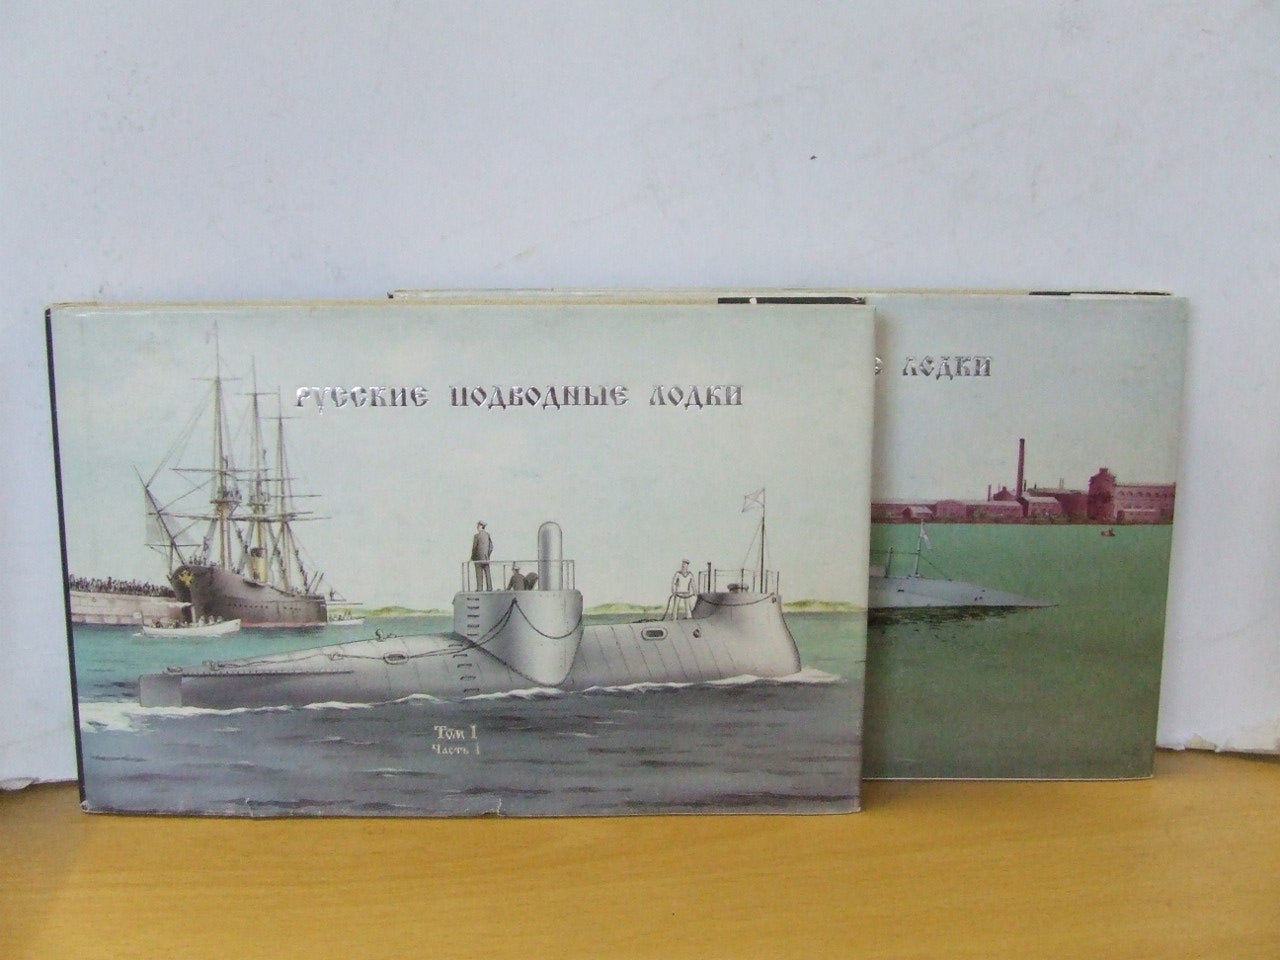 Russian Submarines - Two volume work on early Russian Submarines, from 1834 to 1923